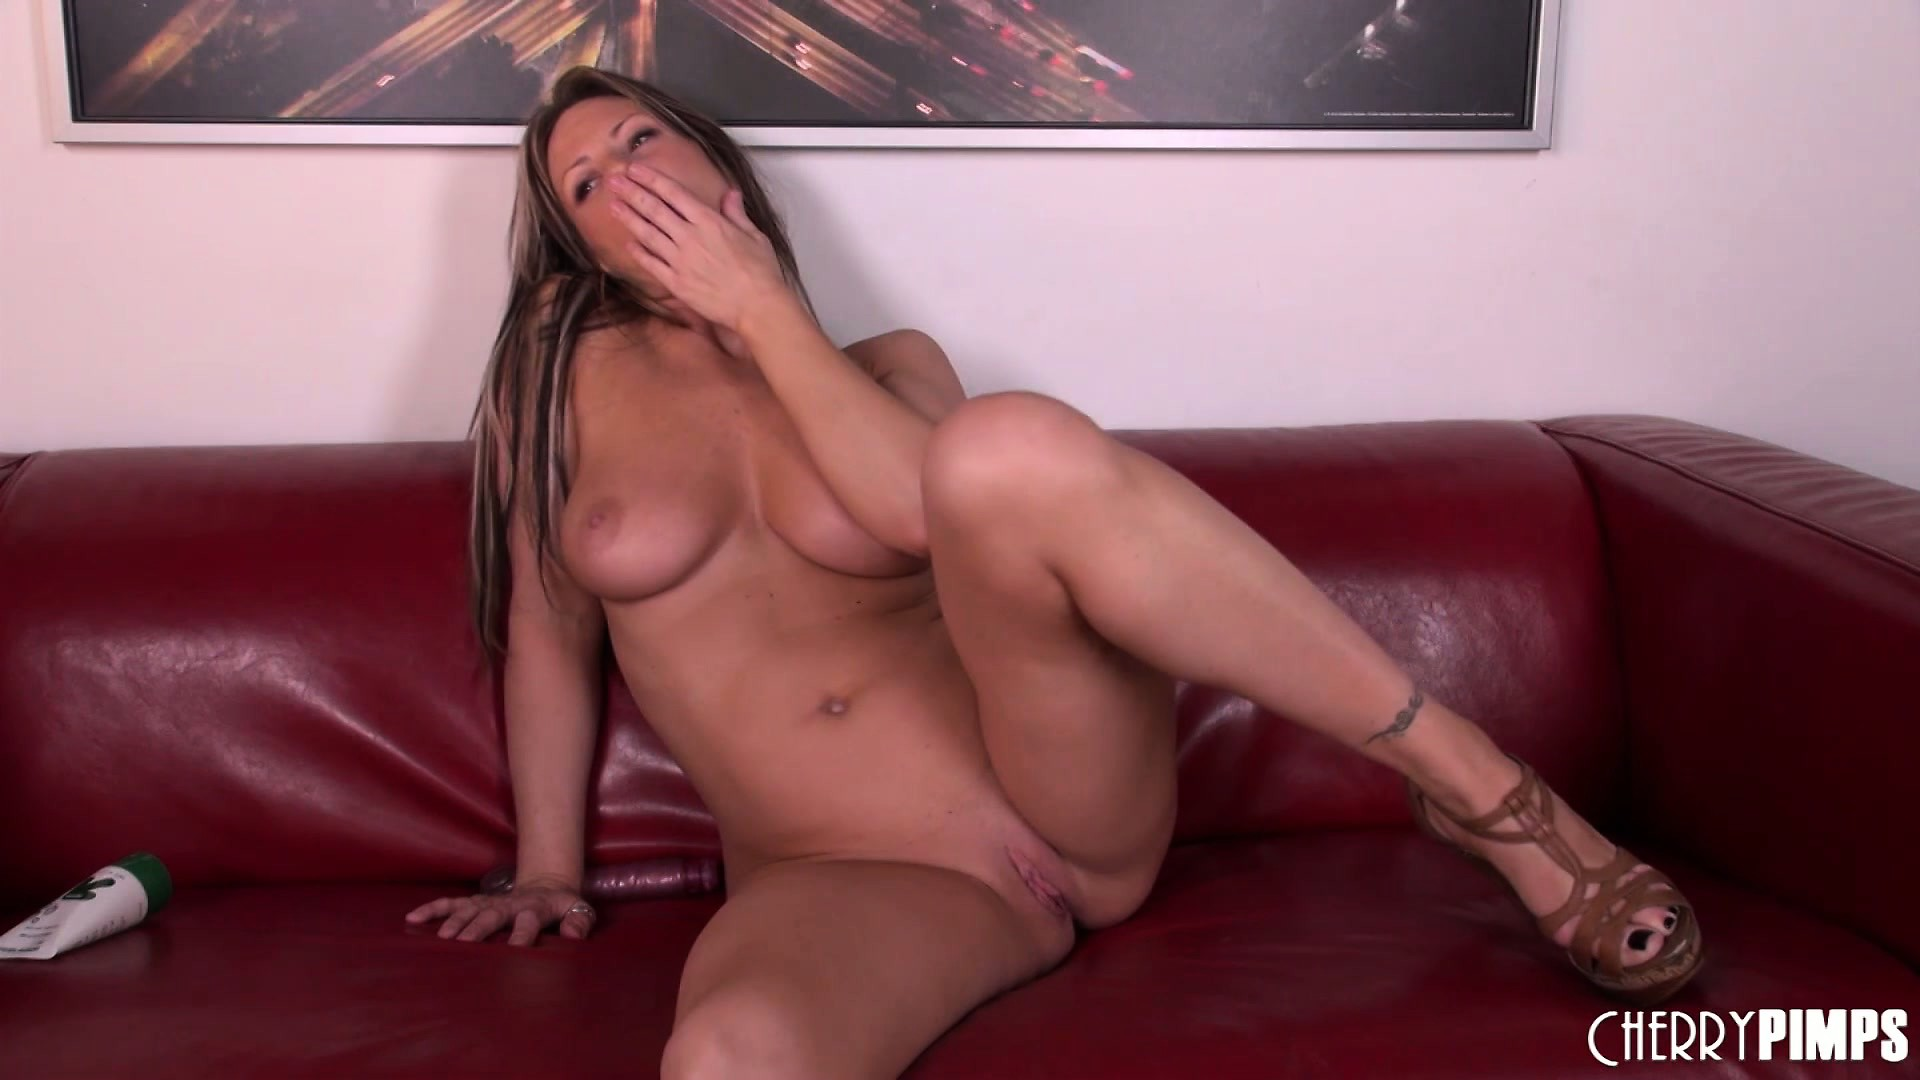 Porno Video of Carolyn Is The Proud Owner Of Big Natural Tits, A Perfect Ass And Sexy Long Legs